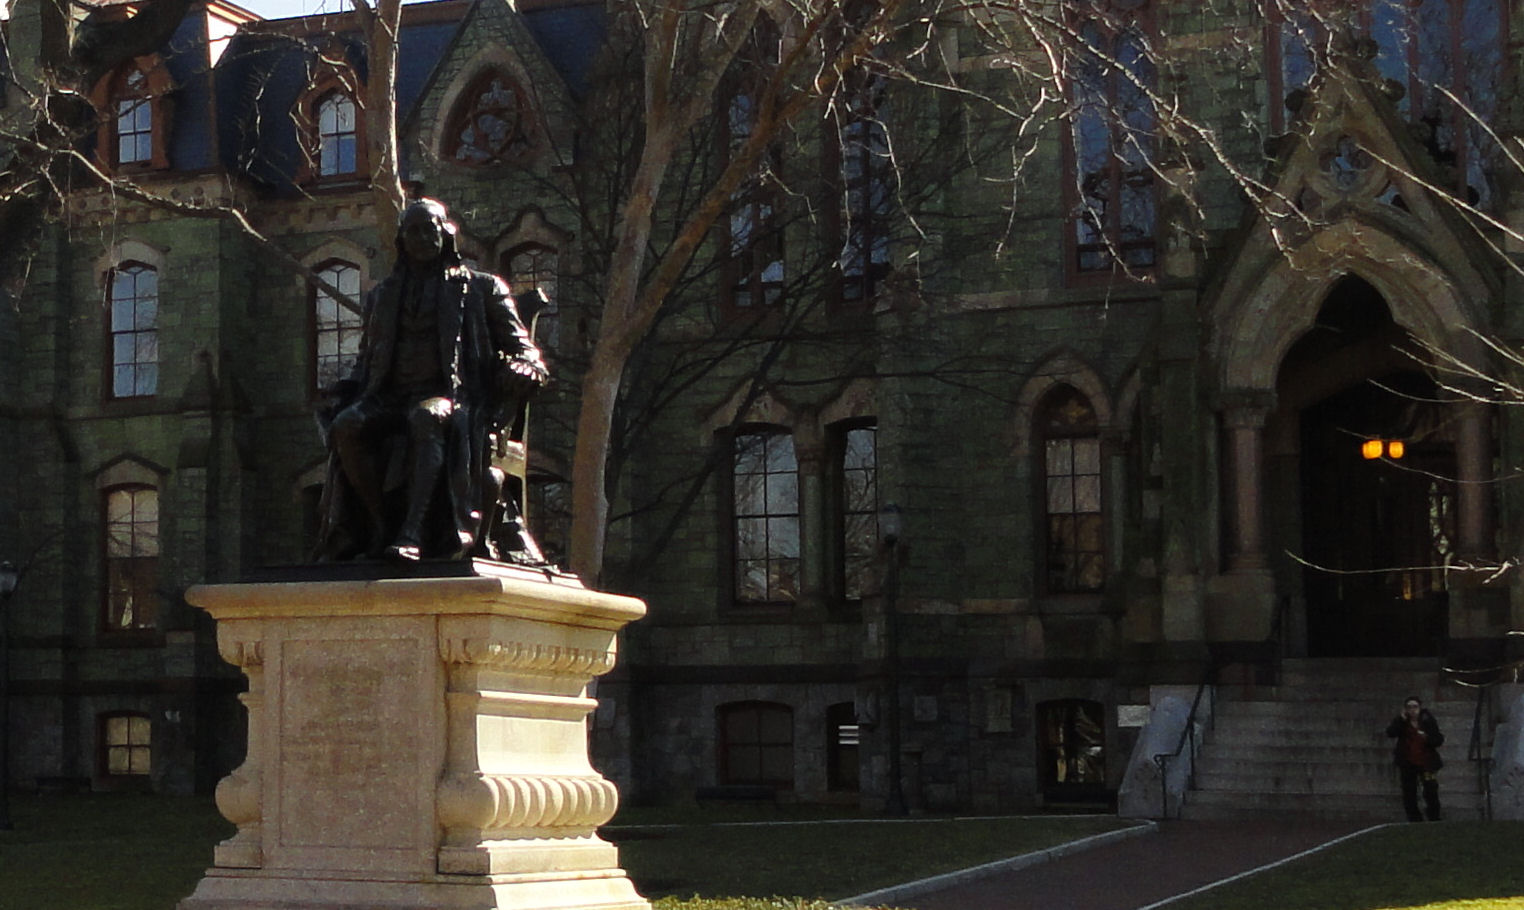 Frankin statue at University of Penn